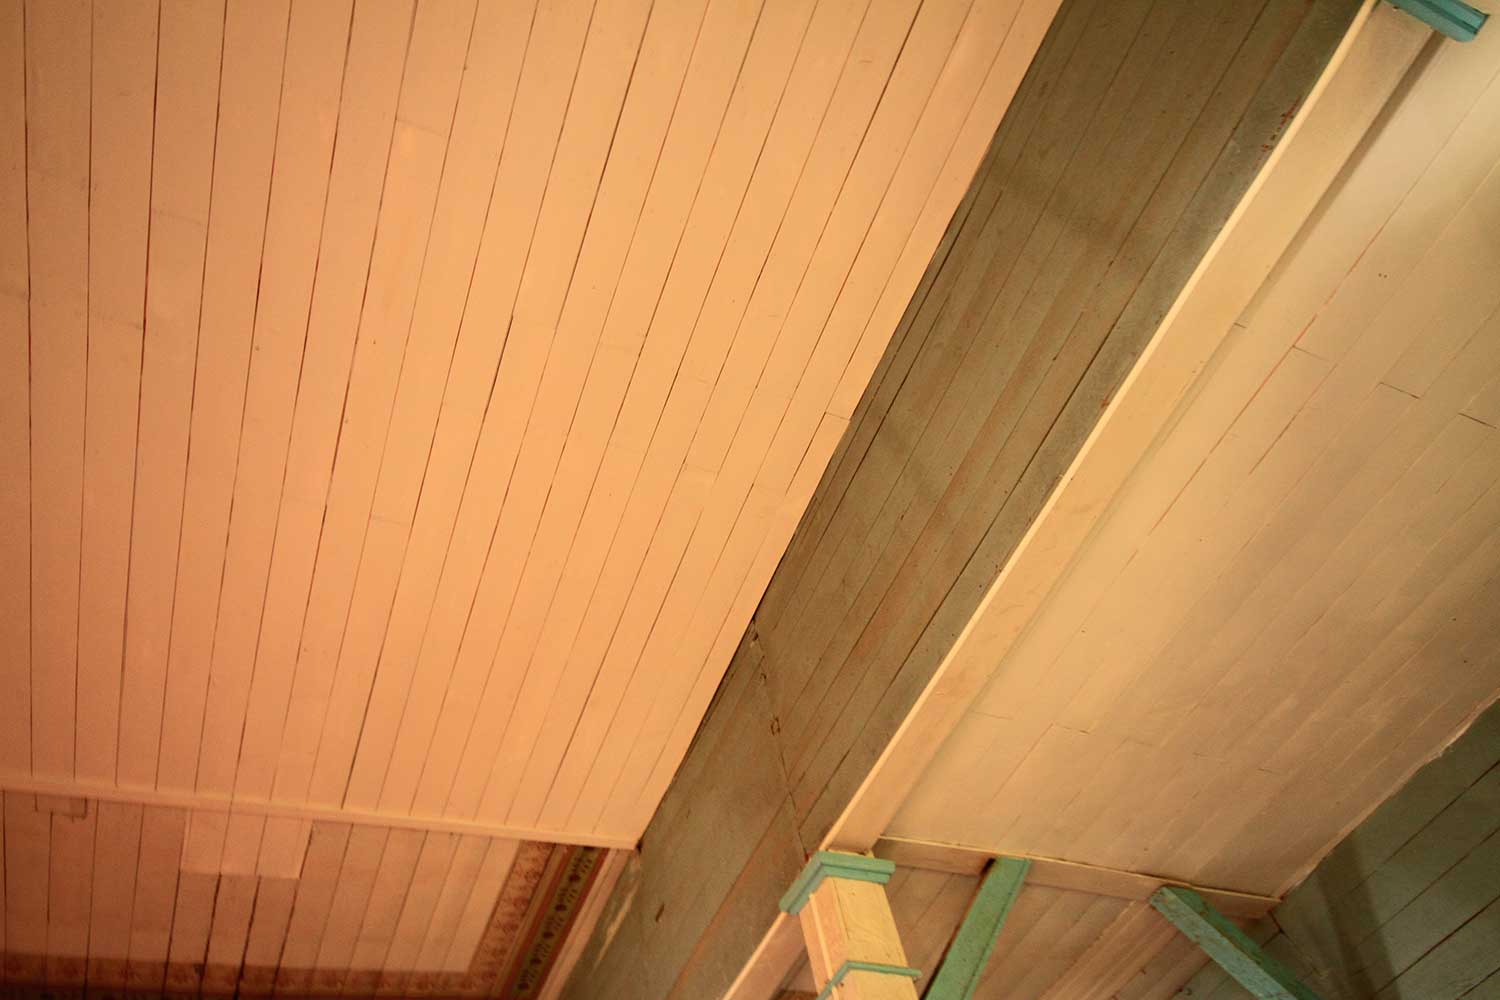 Tongue and groove ceiling of a home